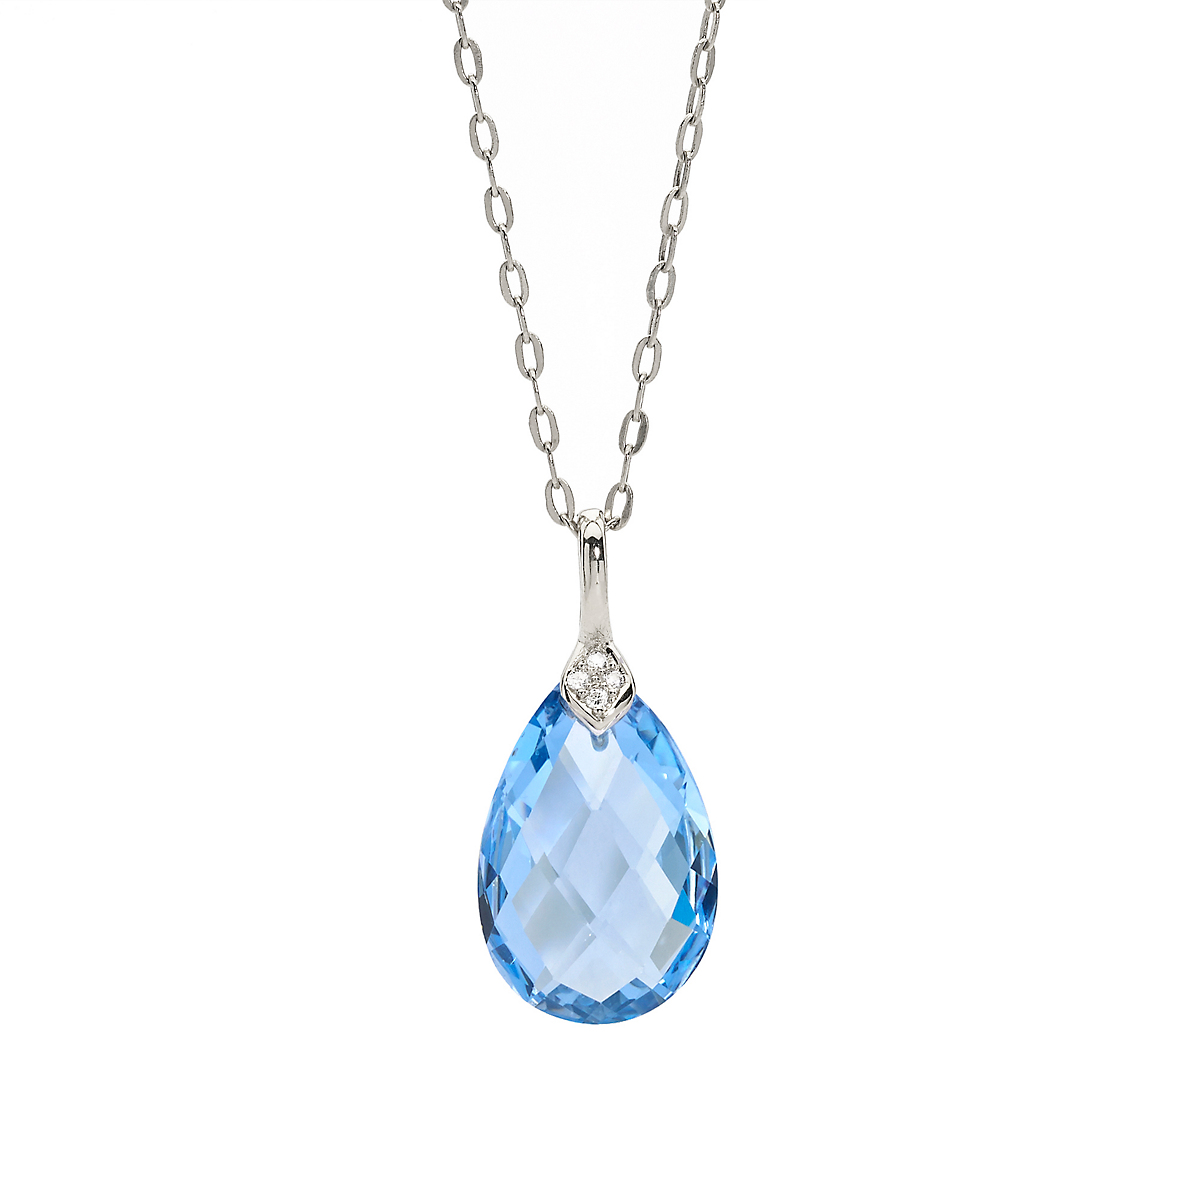 Elizabeth Showers Swiss Blue Topaz & White Sapphire Eliza Droplet Silver Necklace